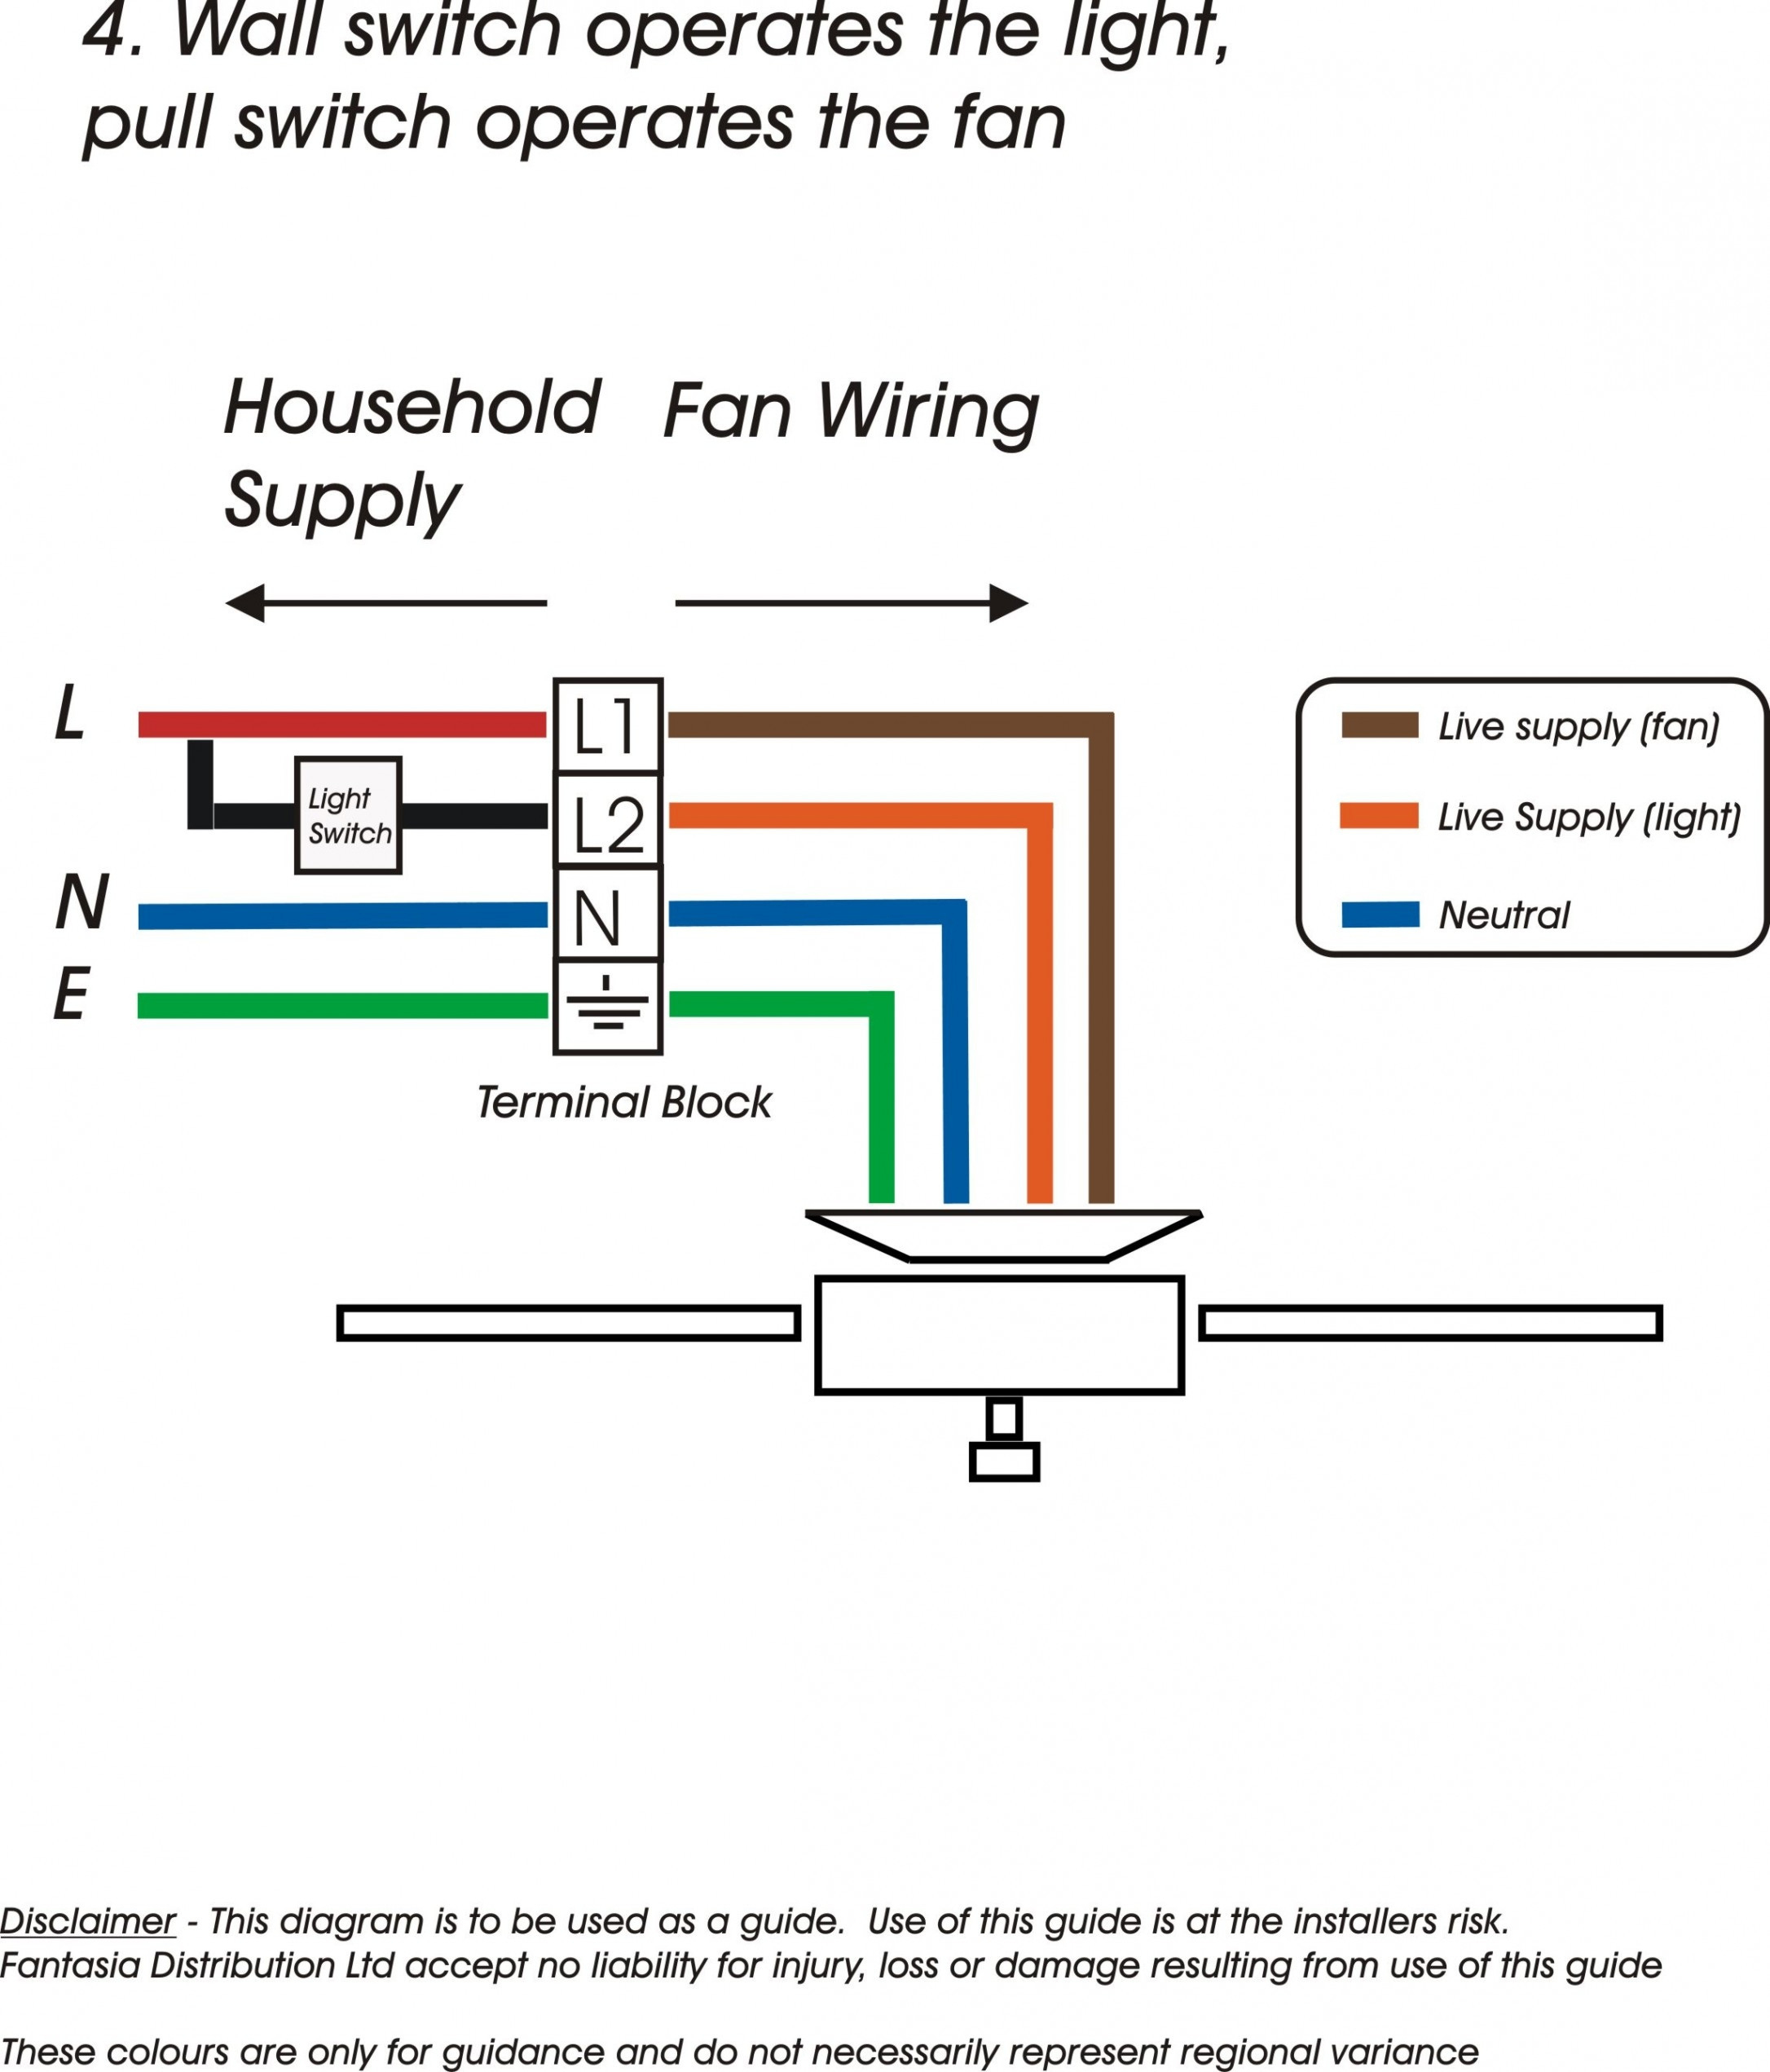 3 Way Light Switch Wiring Diagram Valid Energy Level Diagram – Hvac - 3 Way Light Switch Wiring Diagram